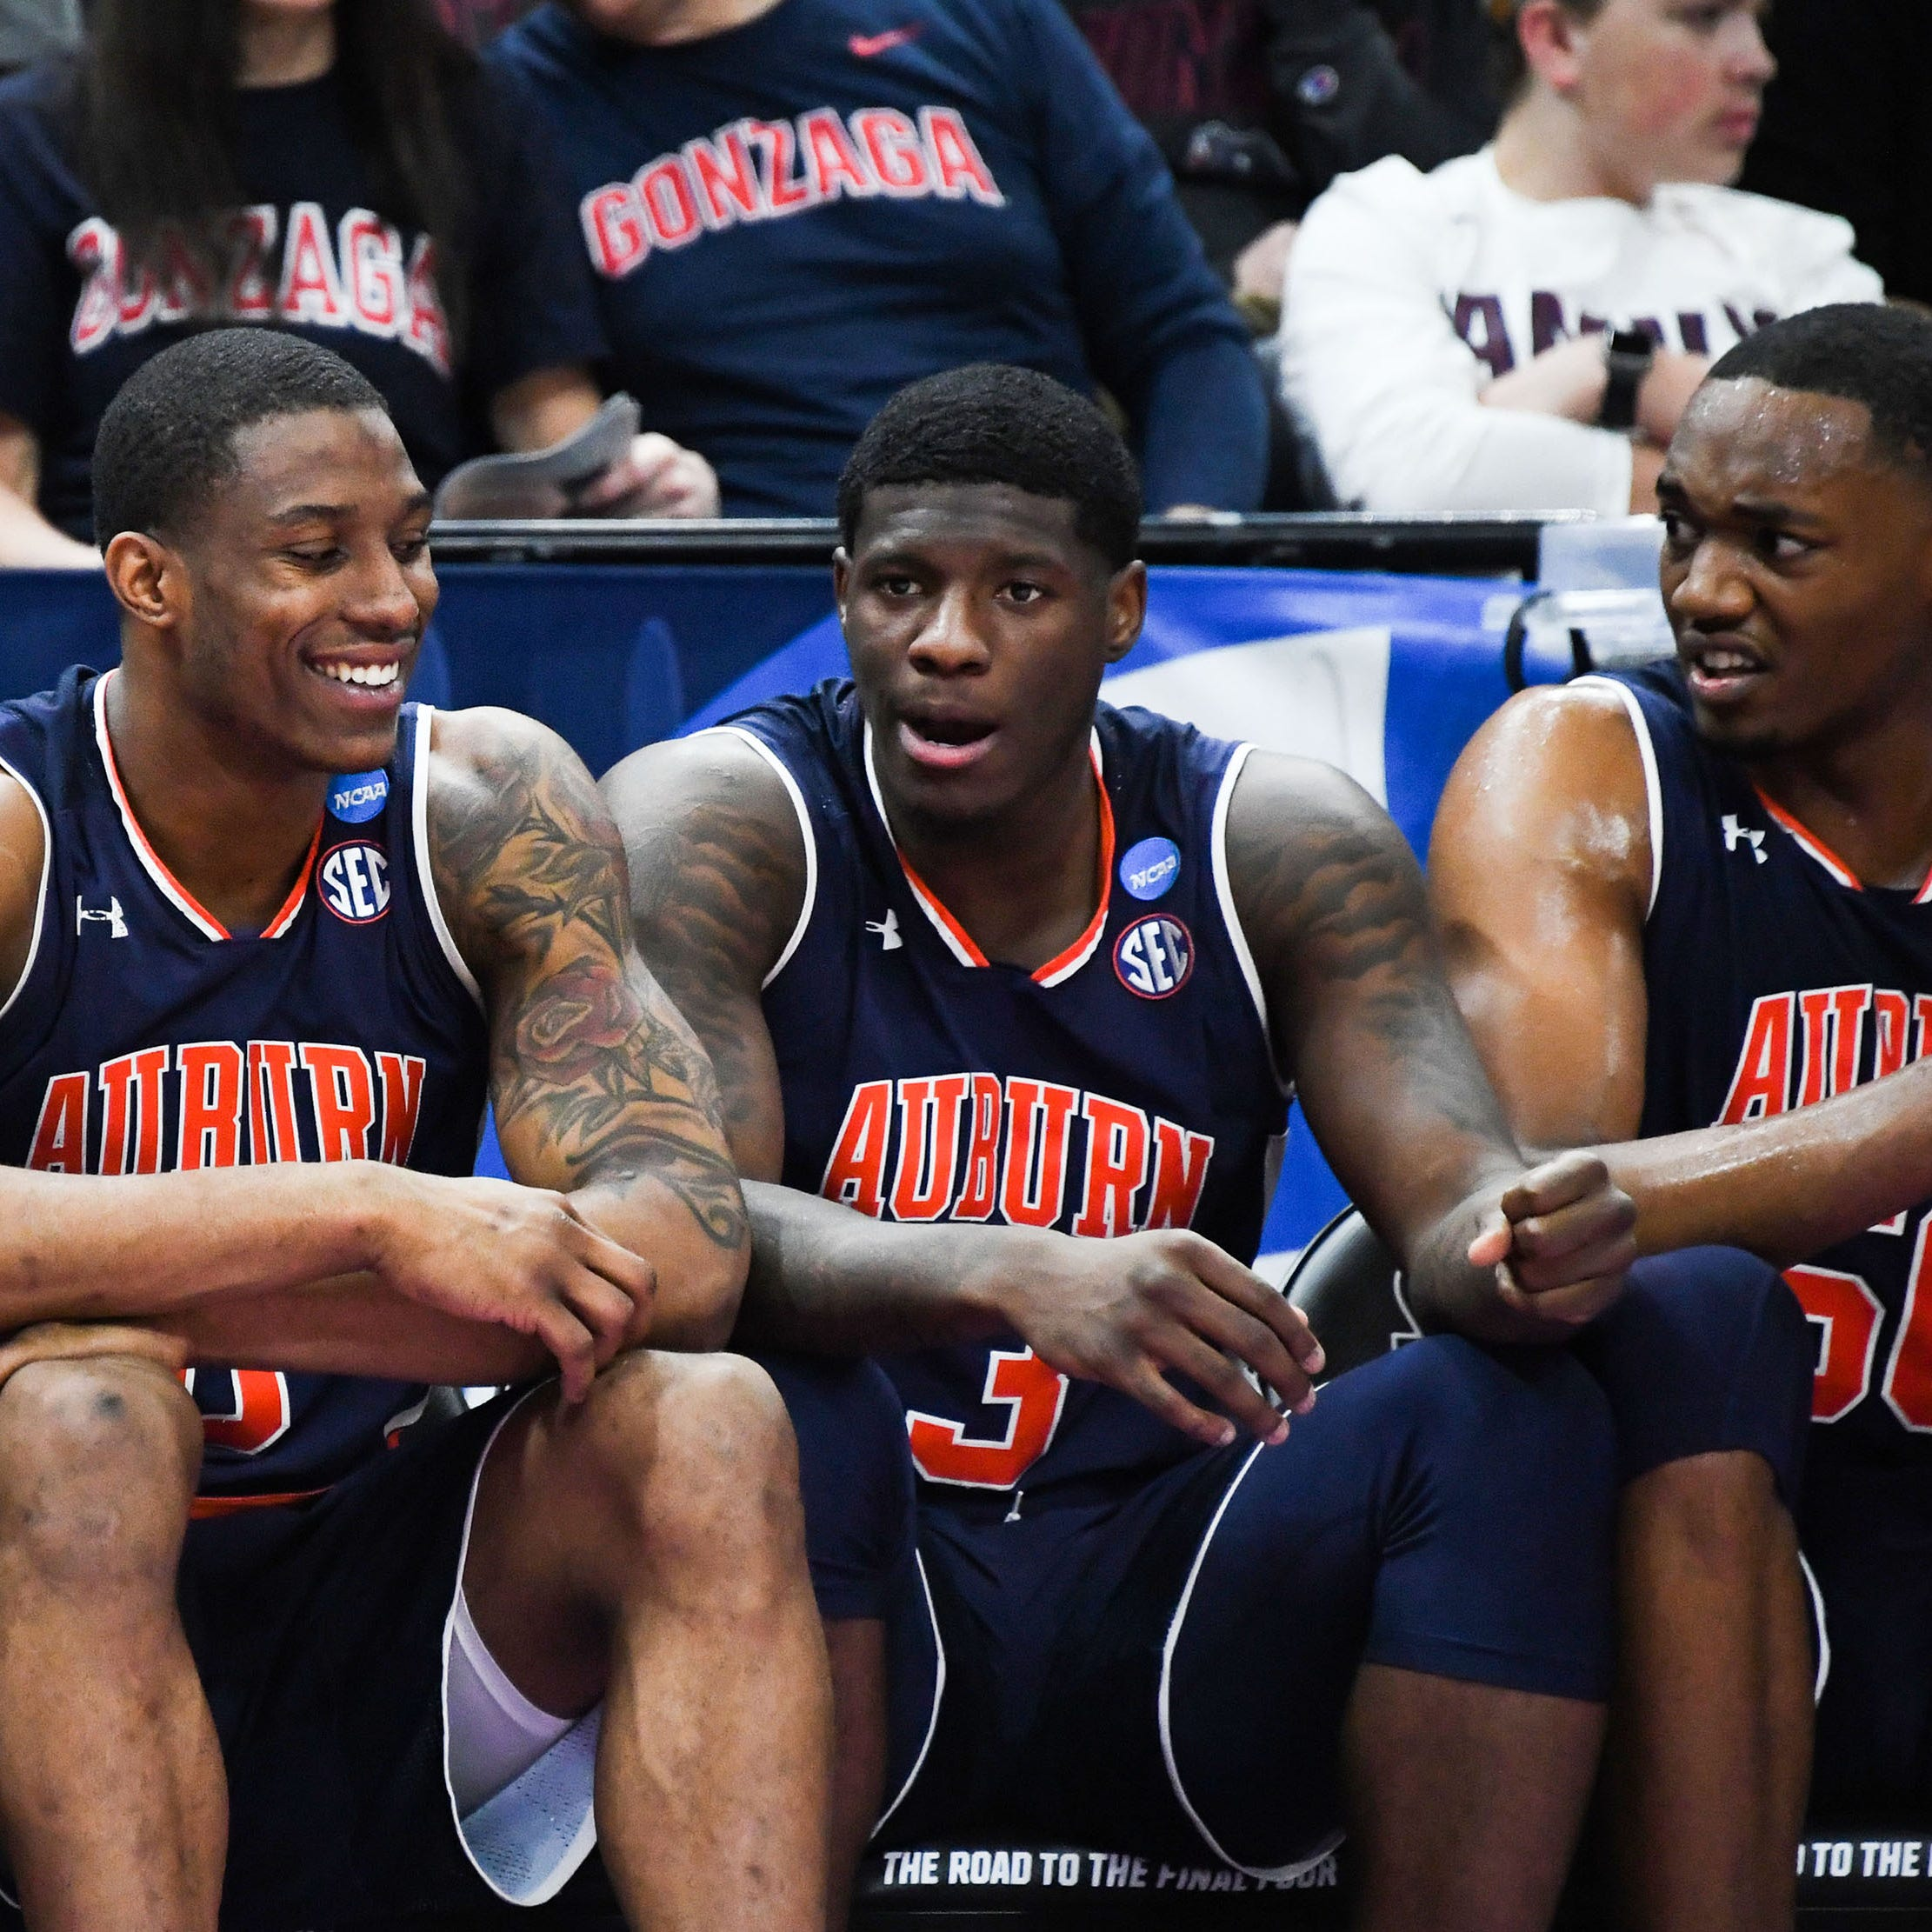 Inside a confident Auburn locker room before and after an NCAA Tournament rout of Kansas